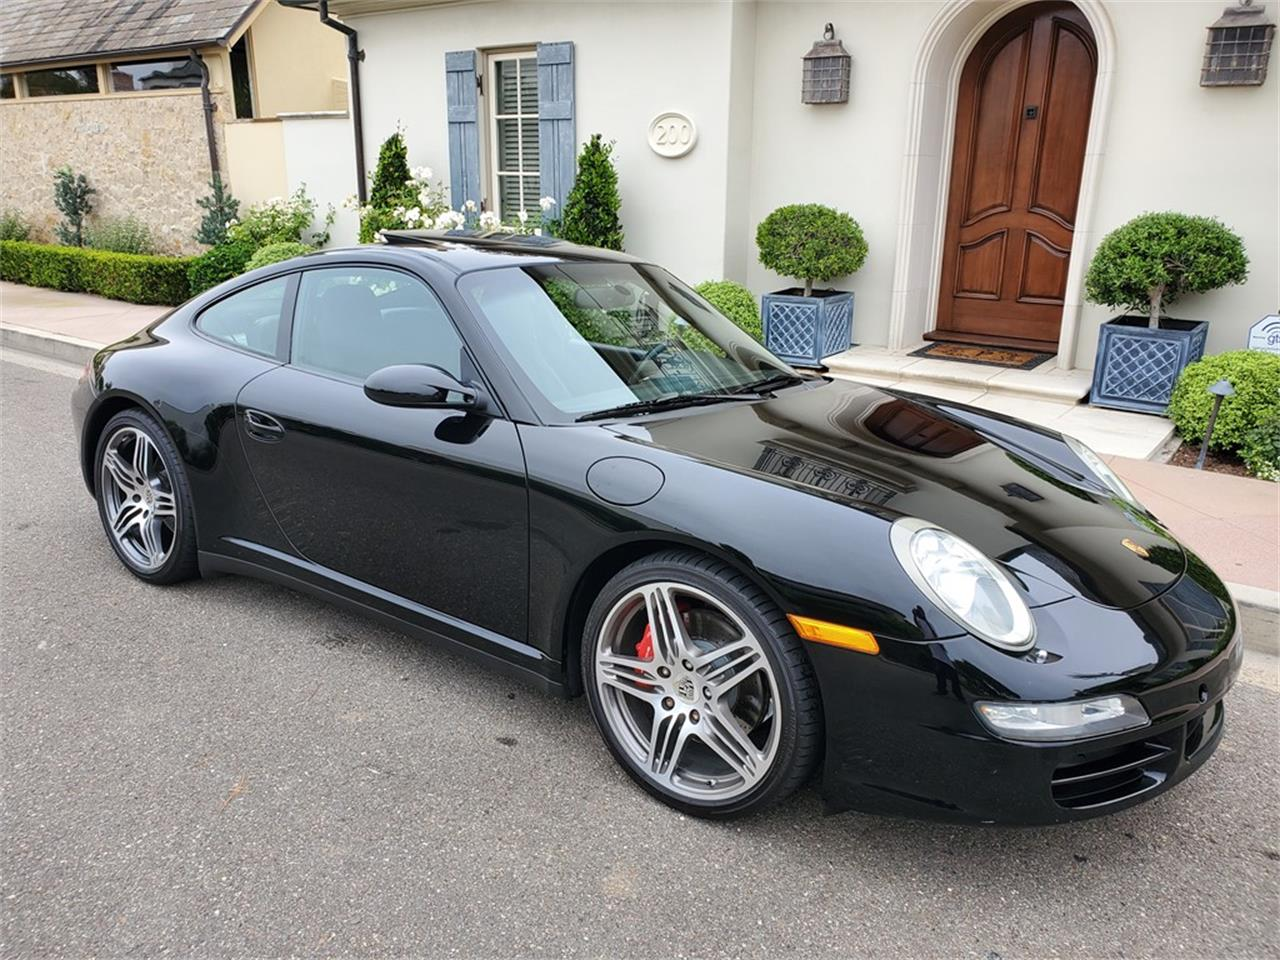 Large Picture of '07 Porsche 911 Carrera 4S Offered by Star European Inc. - QT04